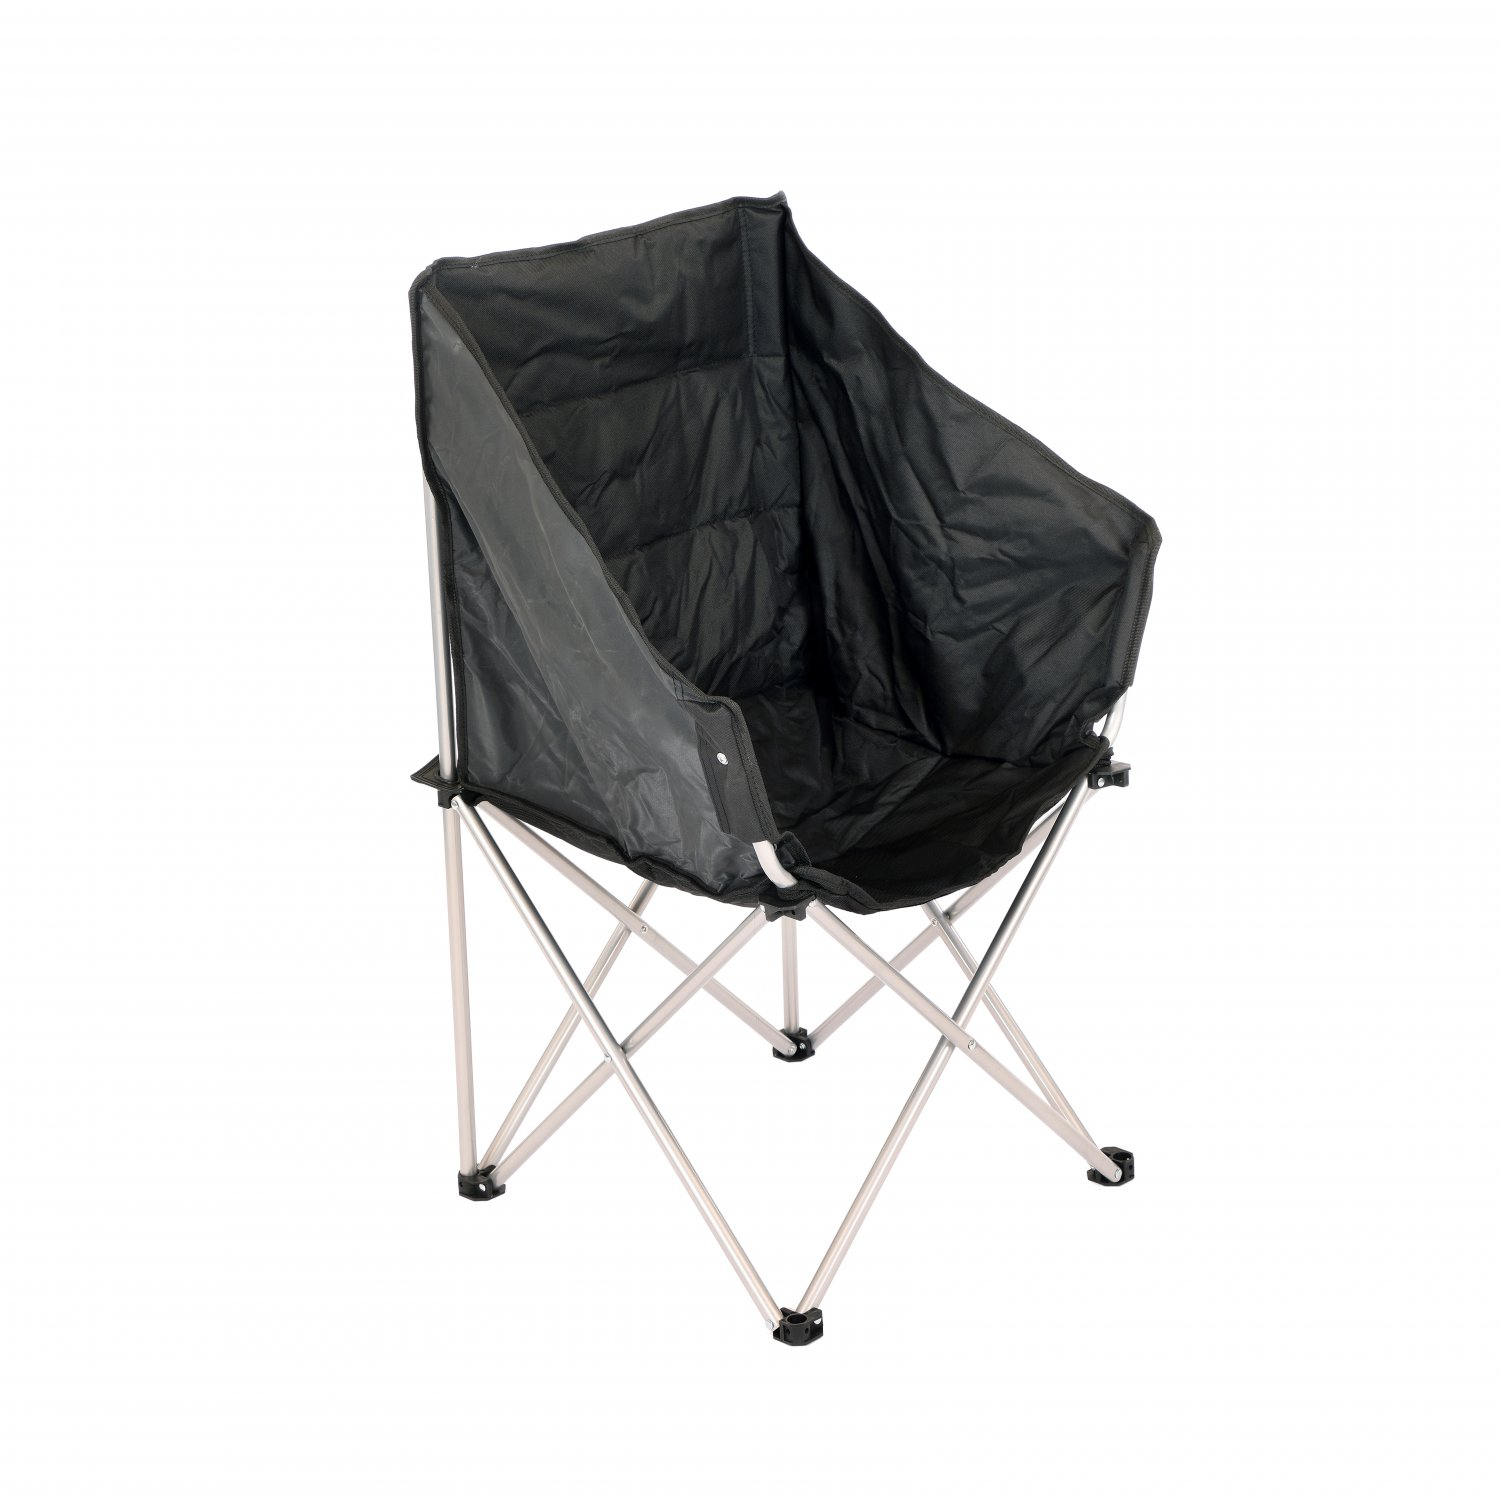 Folding Outdoor Portable Camping Padded Tub Moon Chair Seat